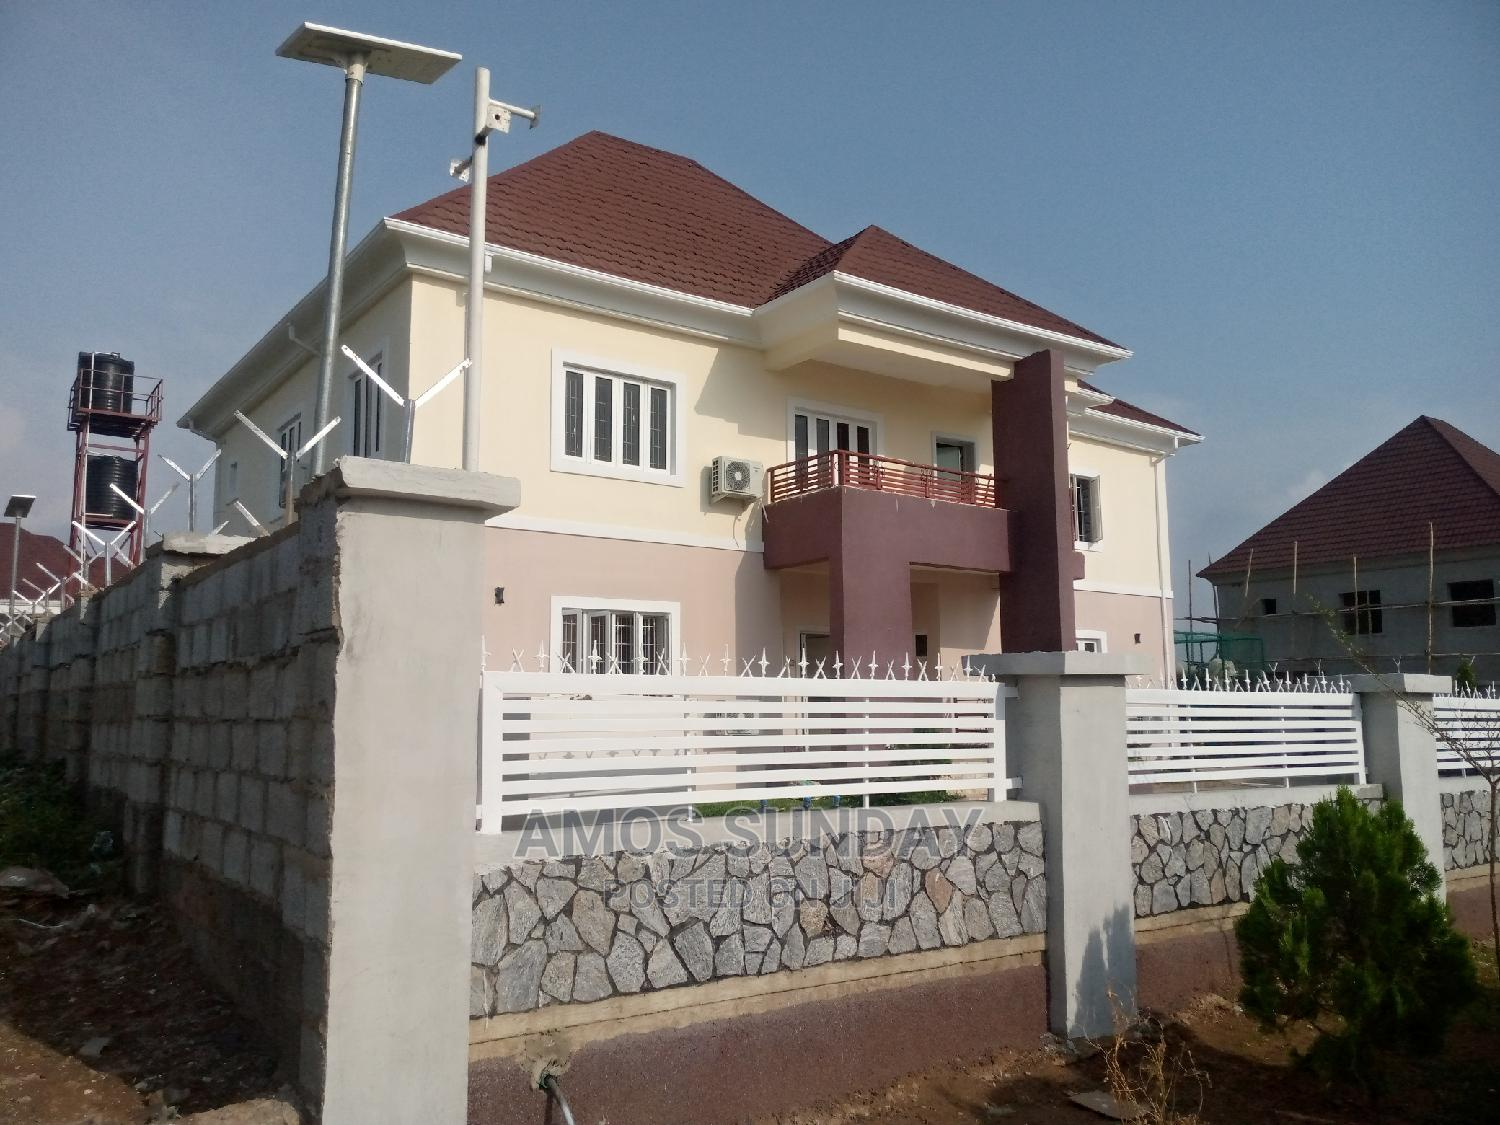 5 Bedroom Detached Duplex at Belham Estate- Abuja Nigeria | Houses & Apartments For Sale for sale in Gwarinpa, Abuja (FCT) State, Nigeria